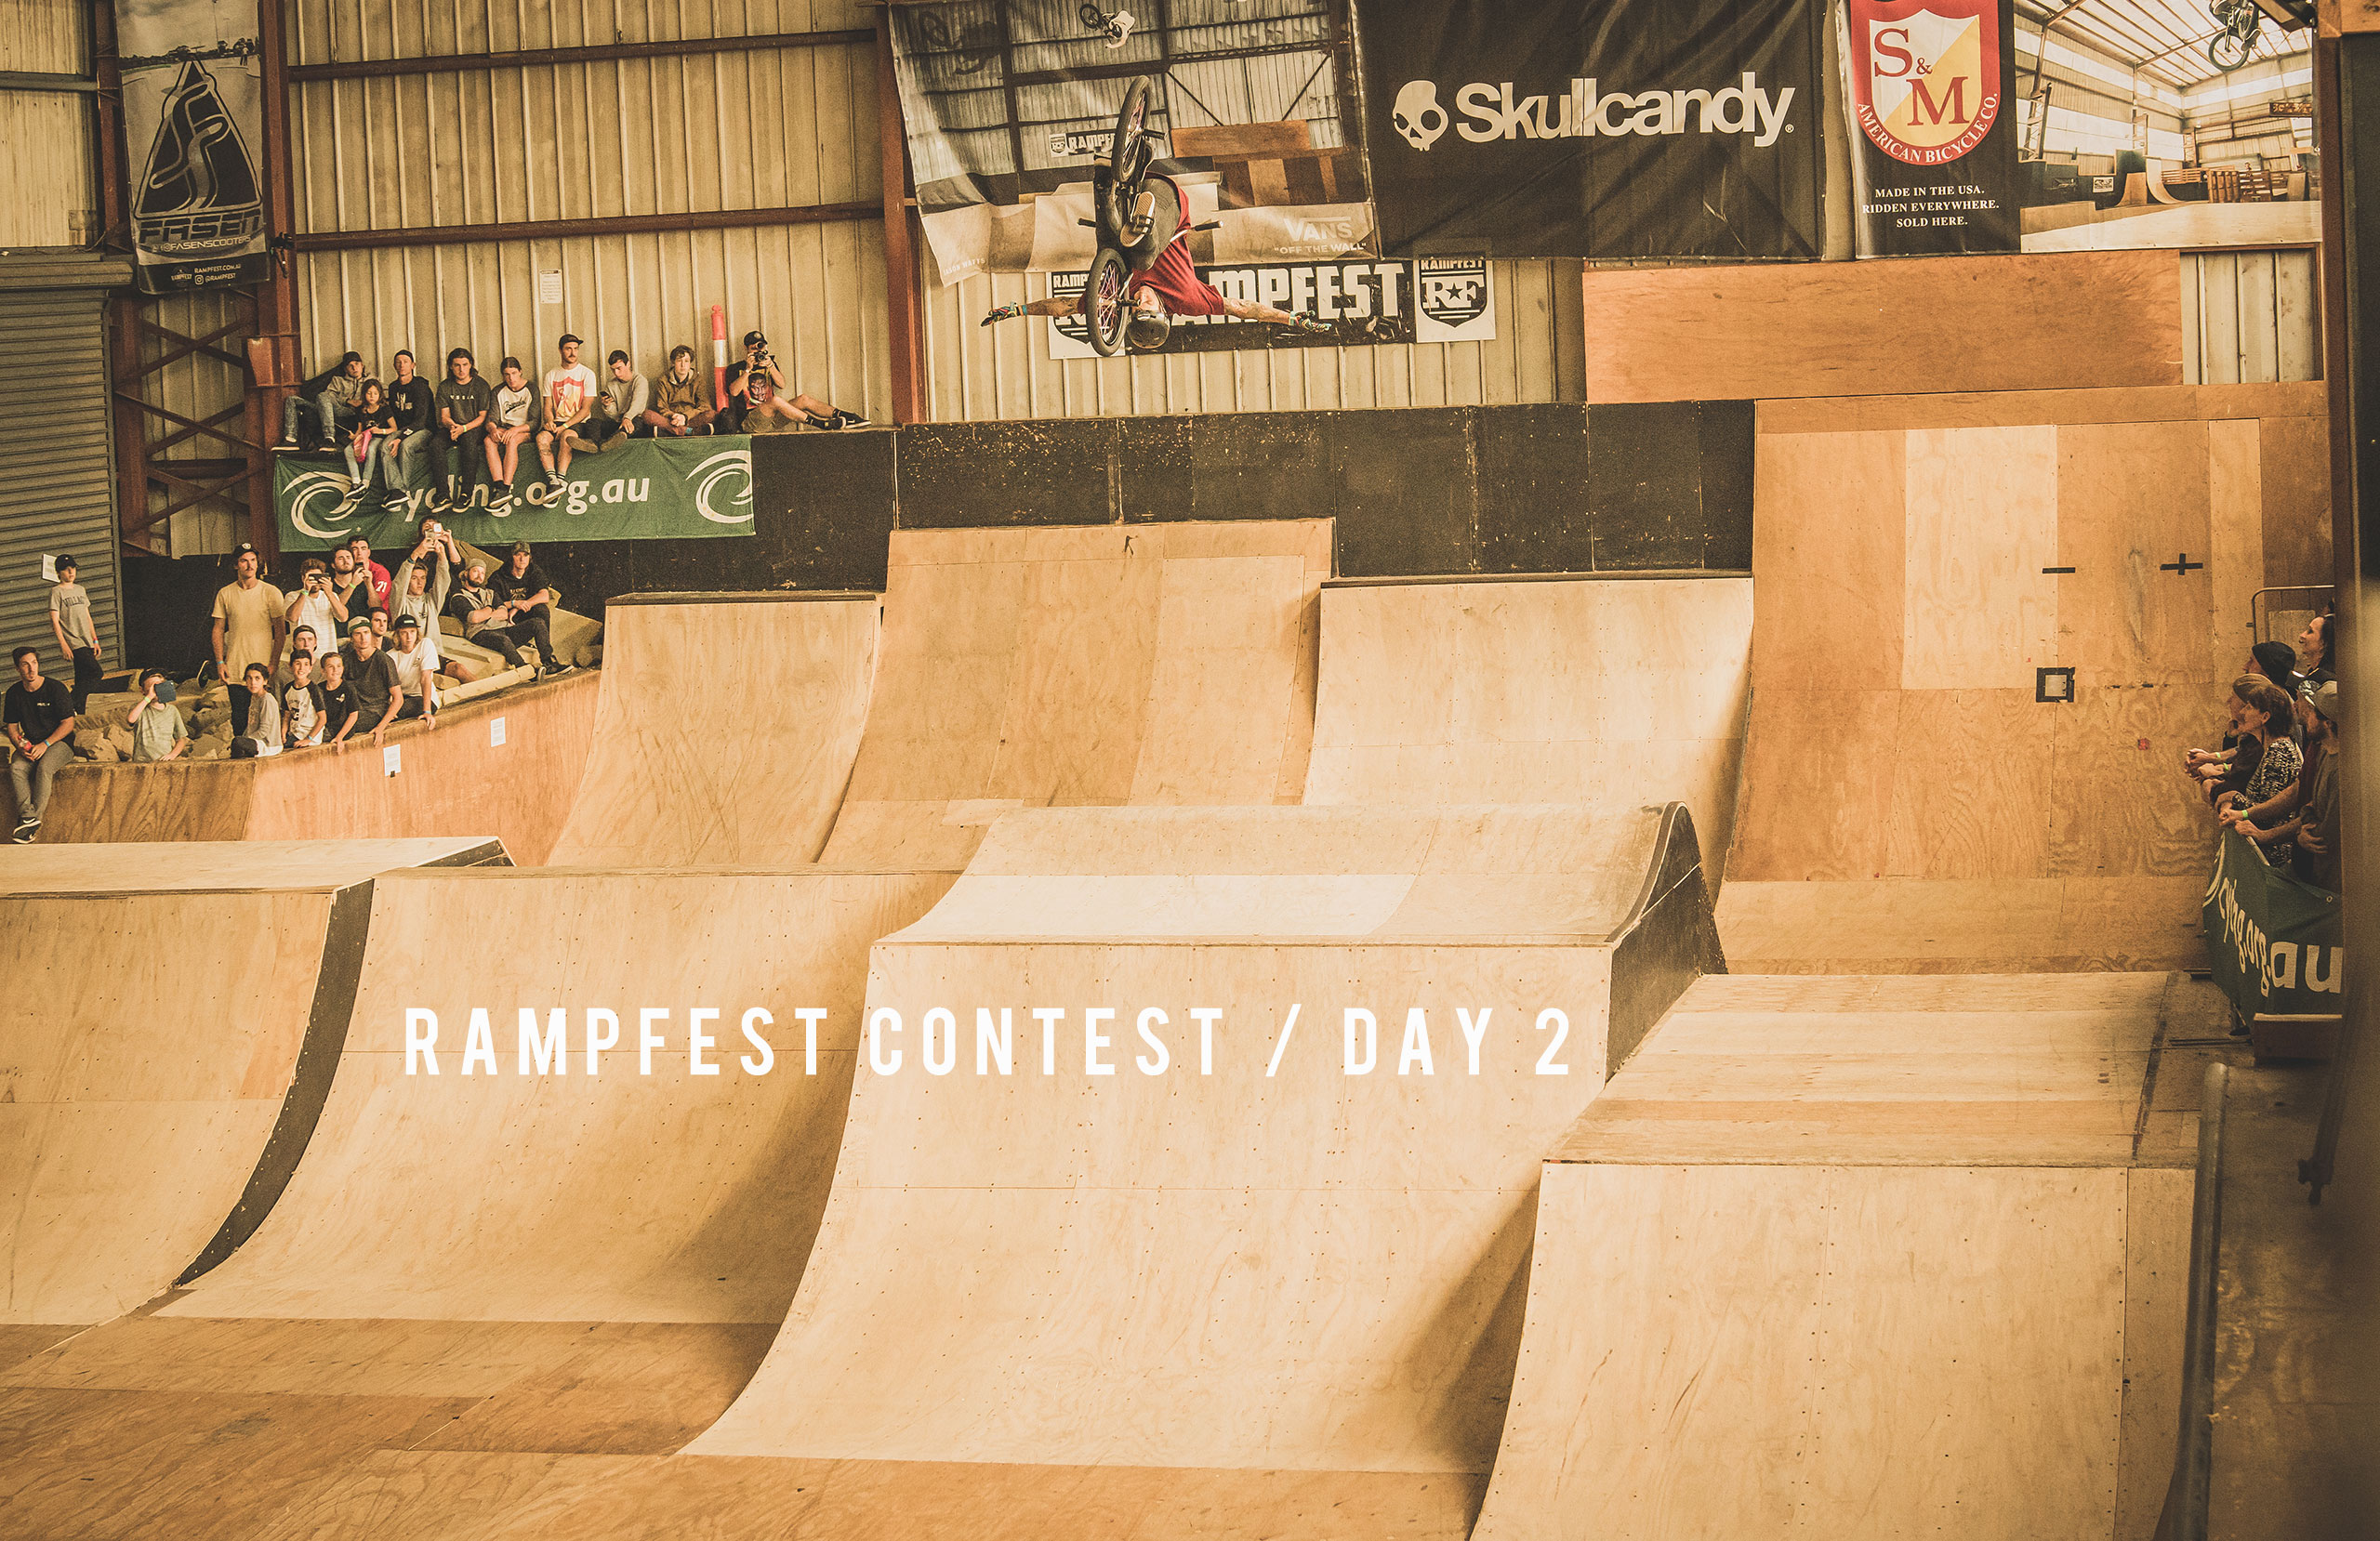 Rampfest Contest – Day 2